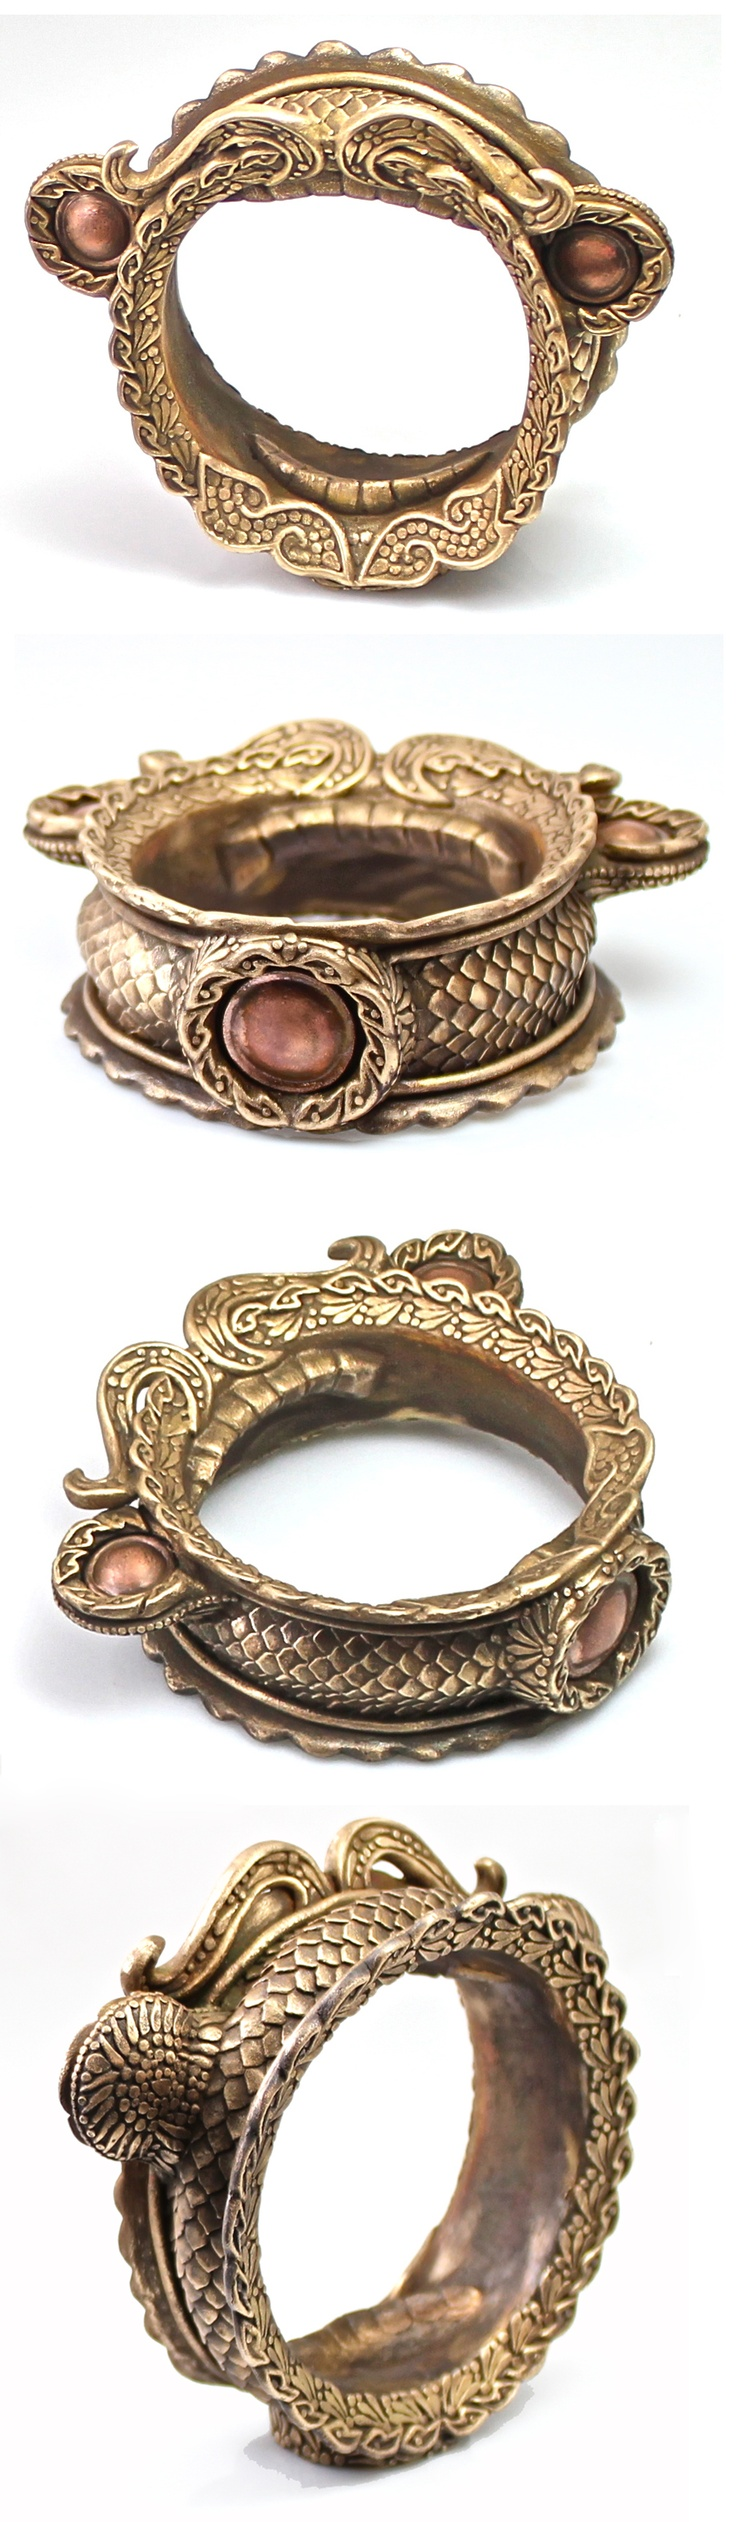 best iud wear that images on pinterest rings contemporary